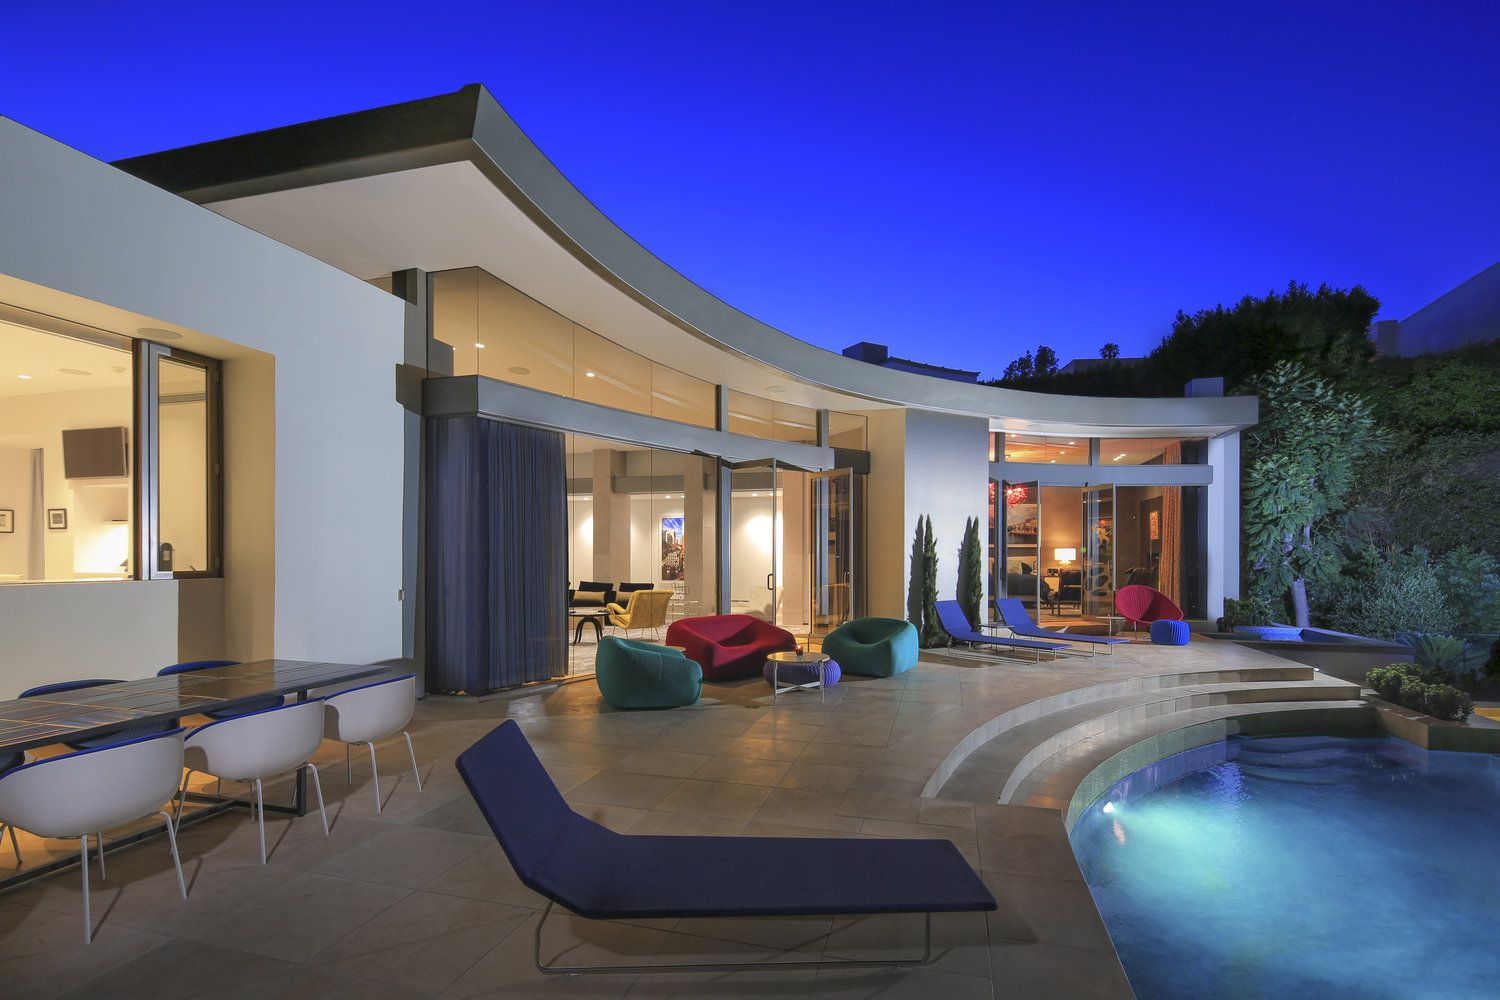 Timeless Architecture in Los Angeles Has Serene Private Courtyard